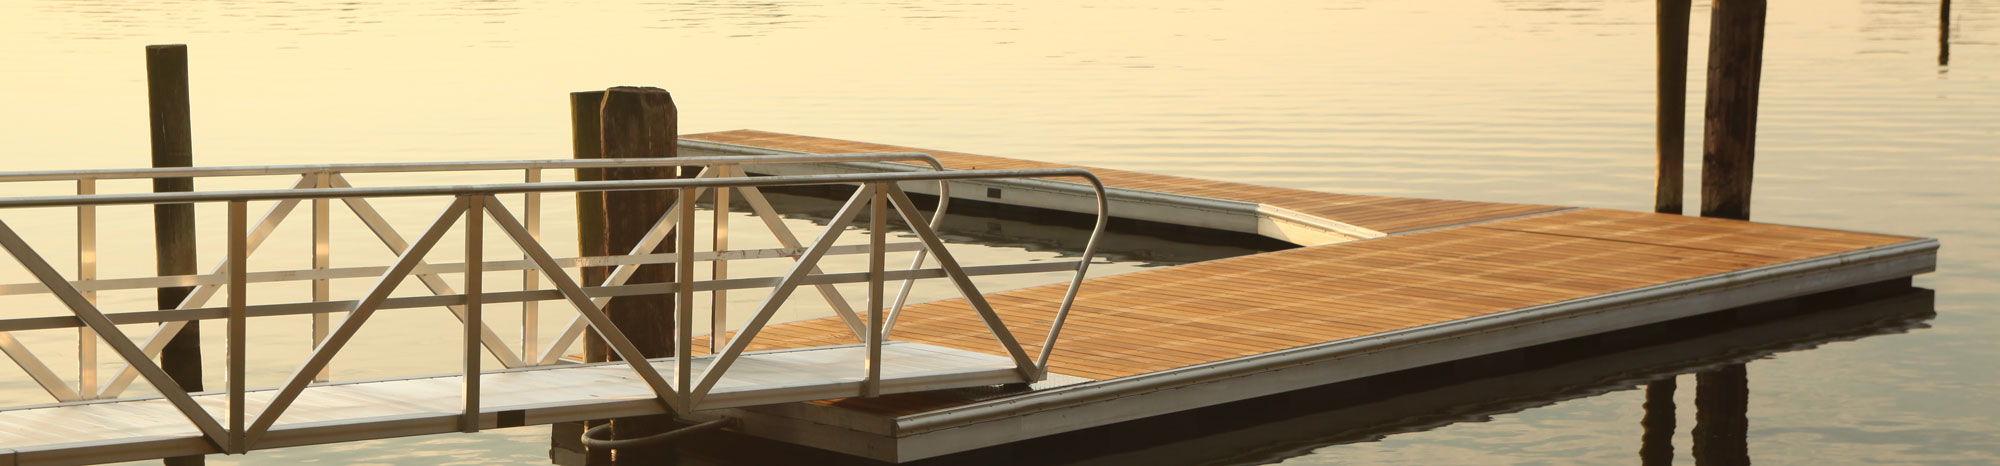 Kayak & SUP Docks